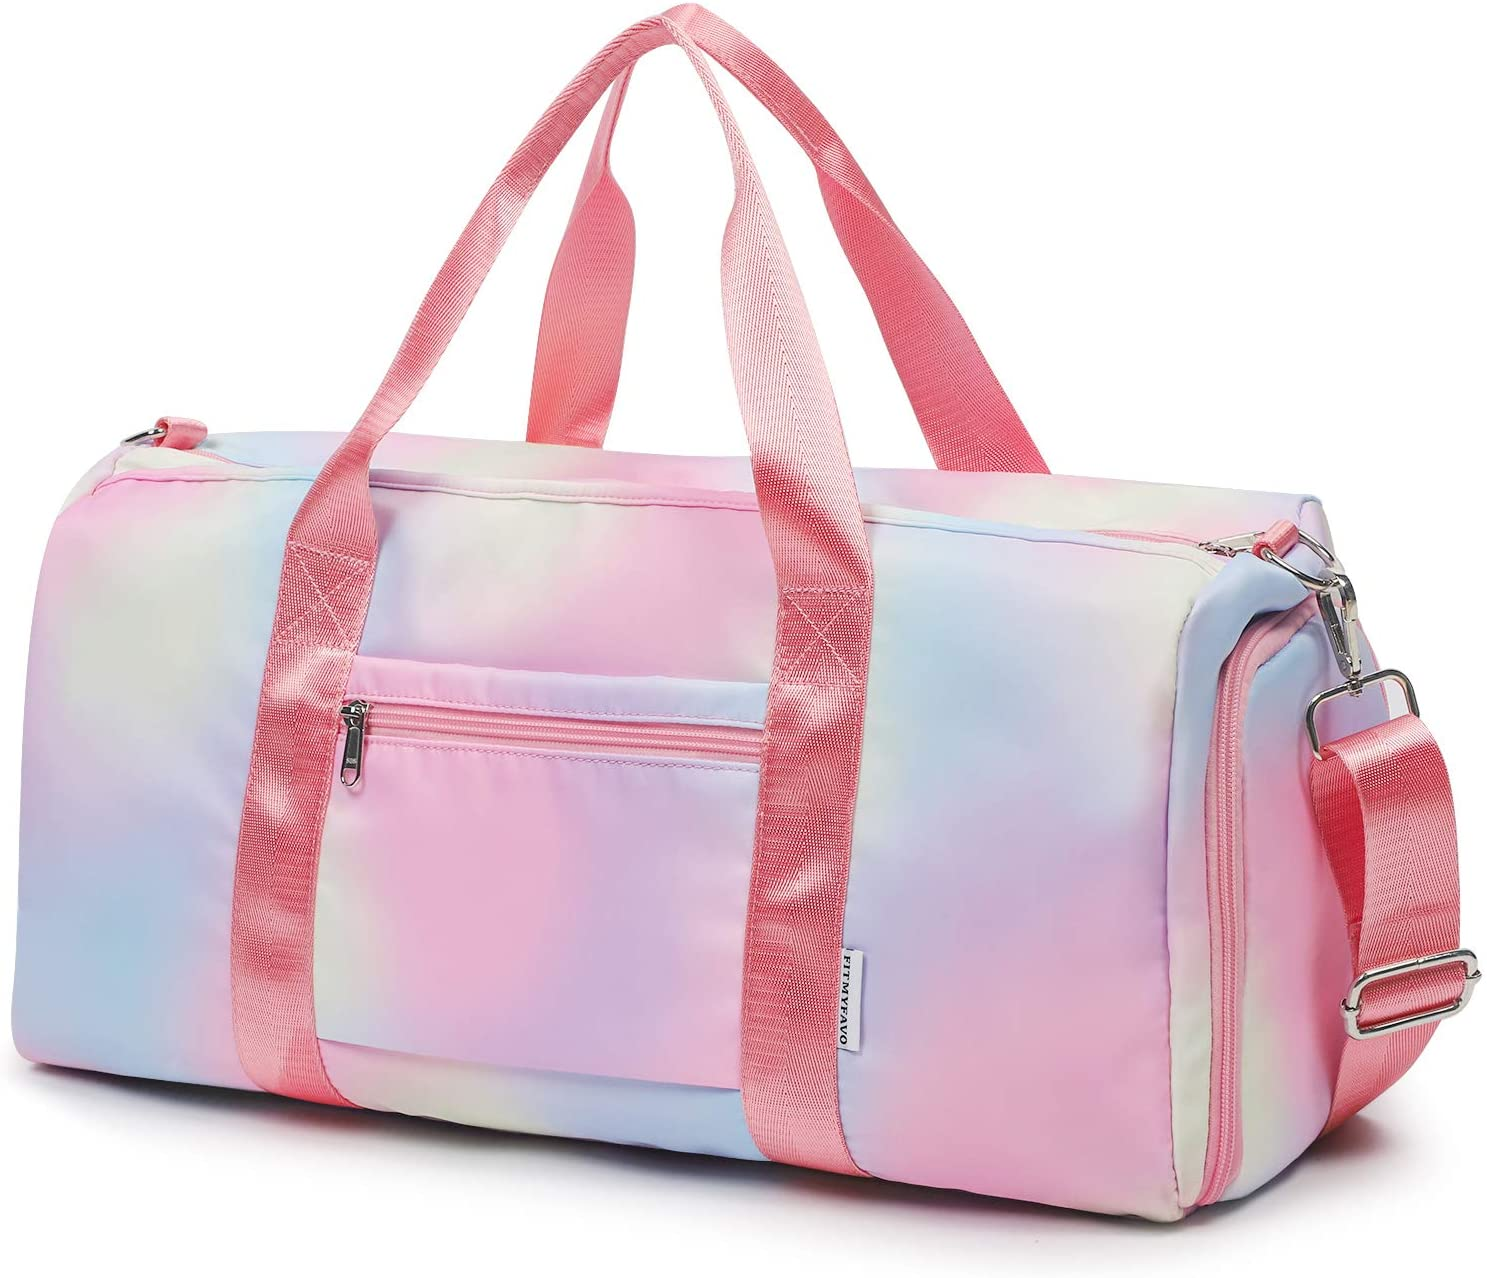 Travel Weekender Bag For Women Girls Overnight Bag Waterproof Nylon Travel Duffle Bag with Shoes Compartment, Wet Compartment(Rainbow)